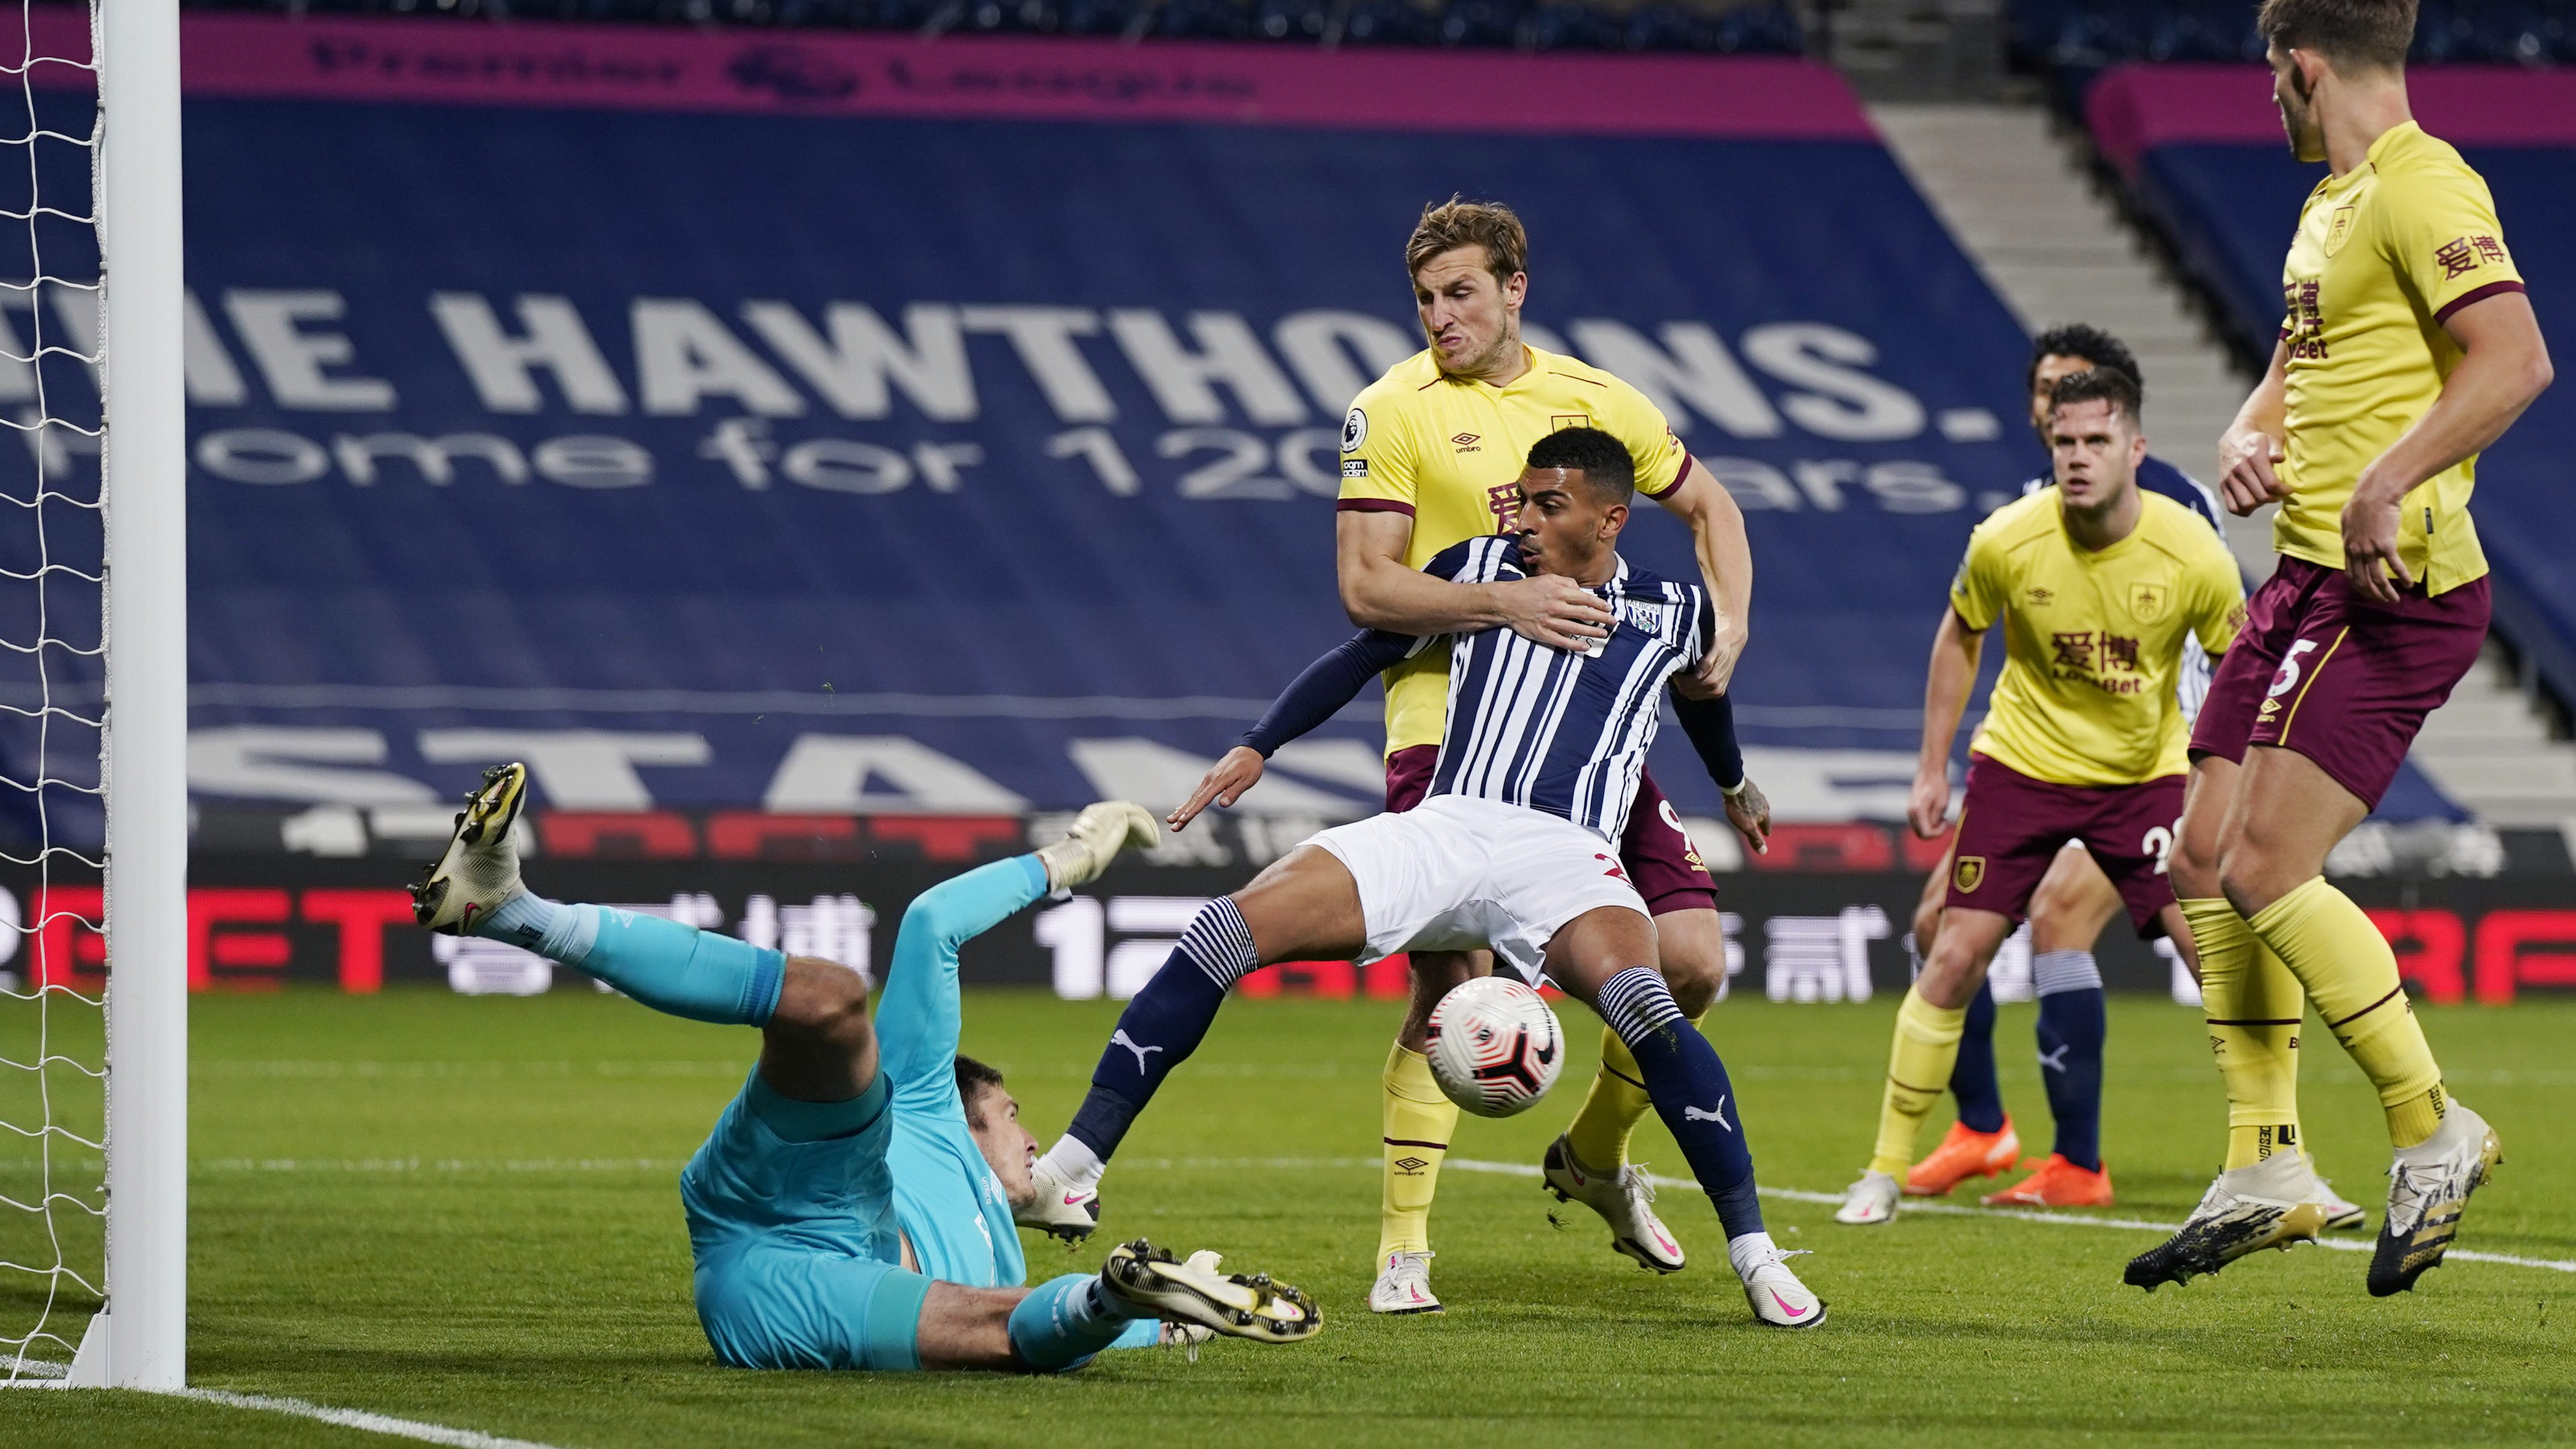 West Brom, Burnley play to first 0-0 draw of PL season